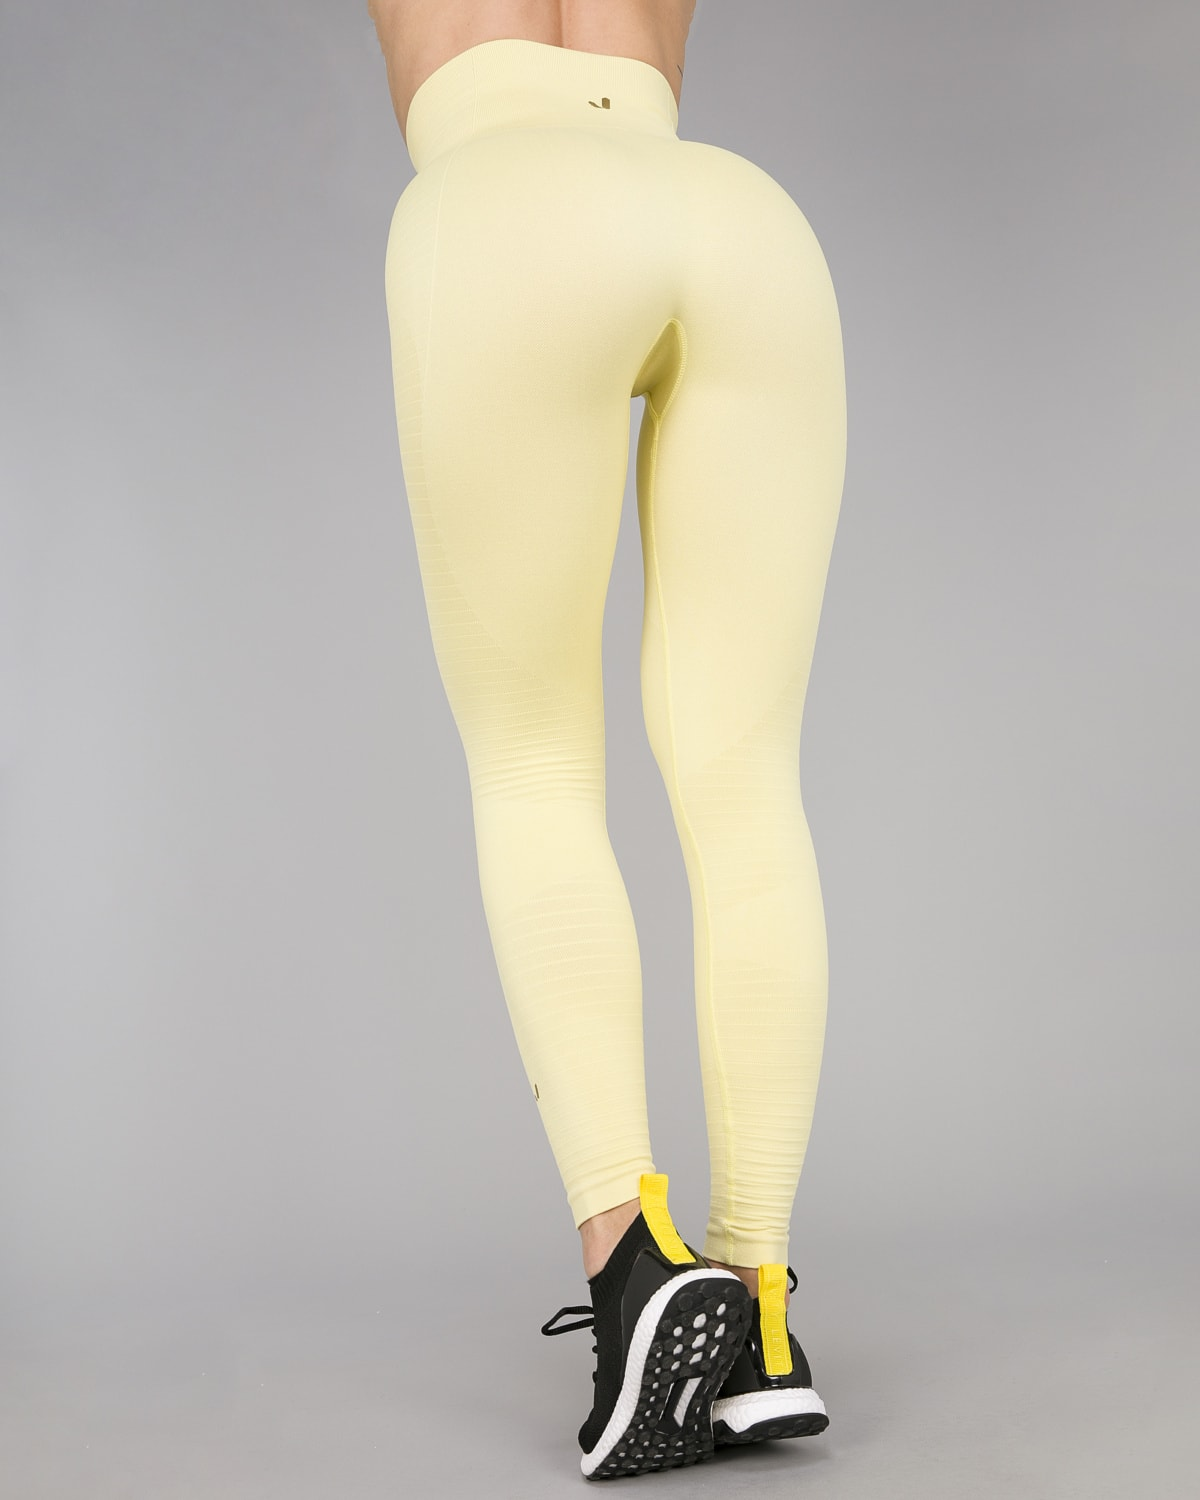 Jerf Gela 2.0 Tights Yellow Pastel19